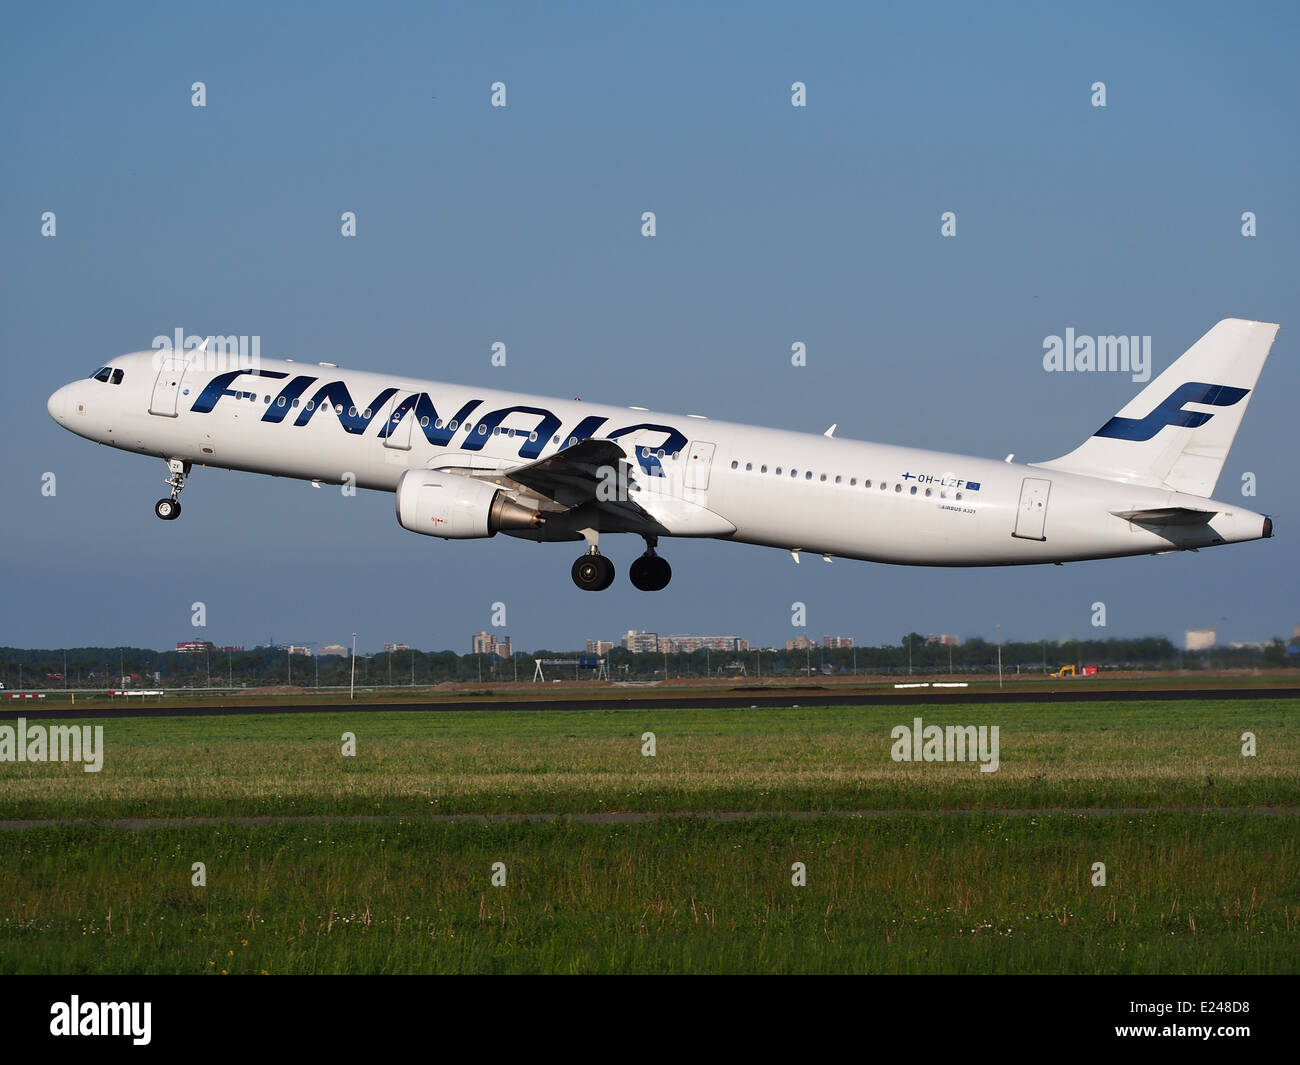 OH-LZF Finnair Airbus A321 takeoff from Schiphol (AMS - EHAM), The Netherlands, 16may2014, pic-2 - Stock Image